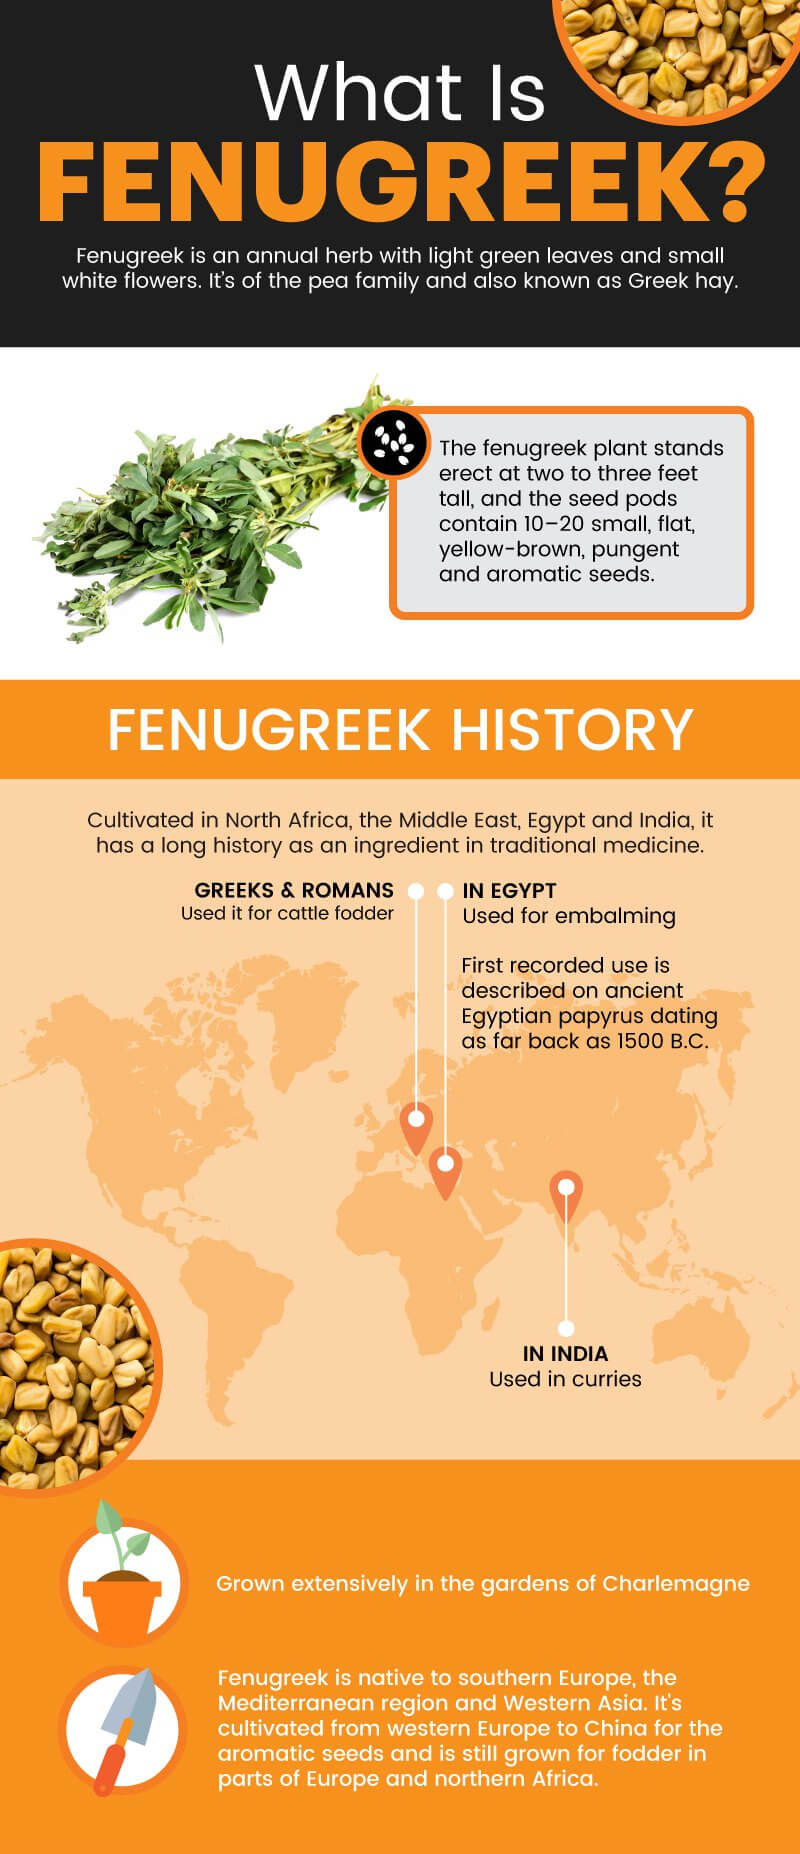 8 Fenugreek Benefits, Including for the Gut, Lungs & More